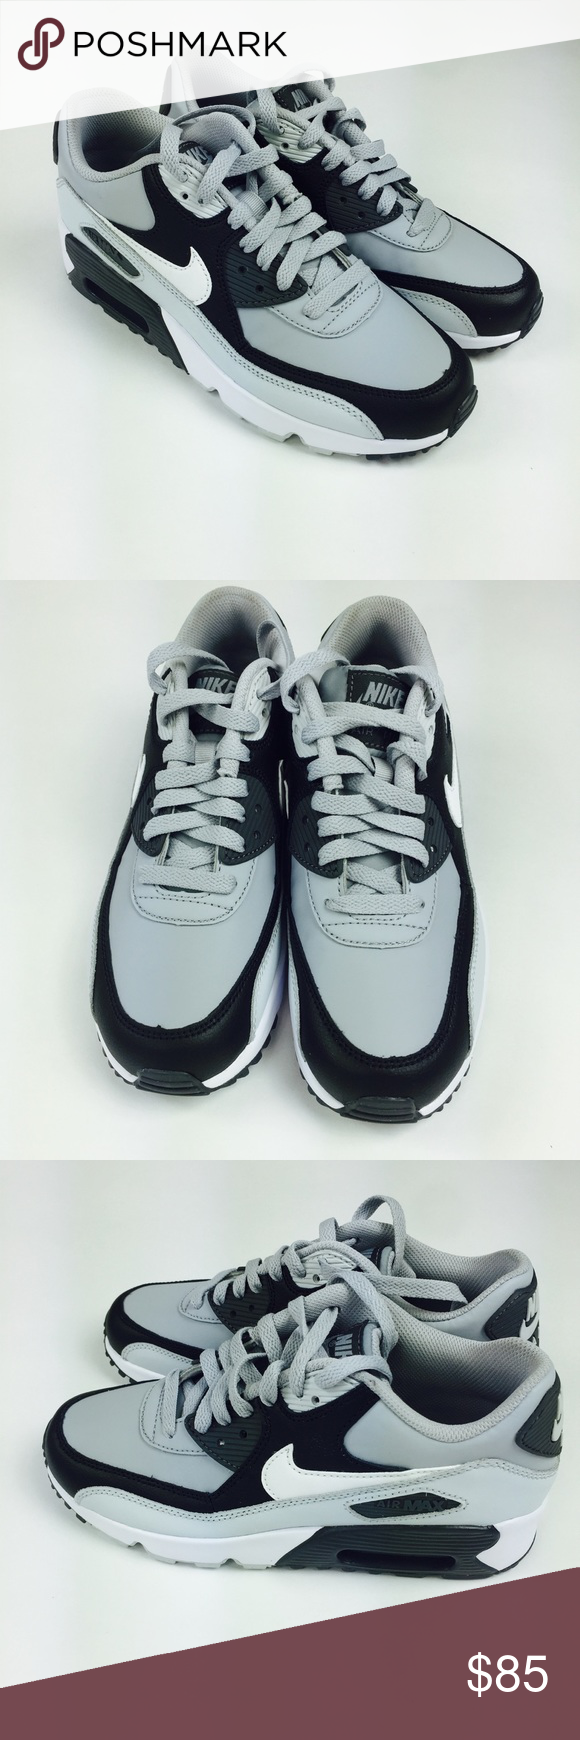 best service b31af 729e5 Nike Air Max 90 running shoes 5.5Y women s 7 gray Nike Air Max 90 Leather